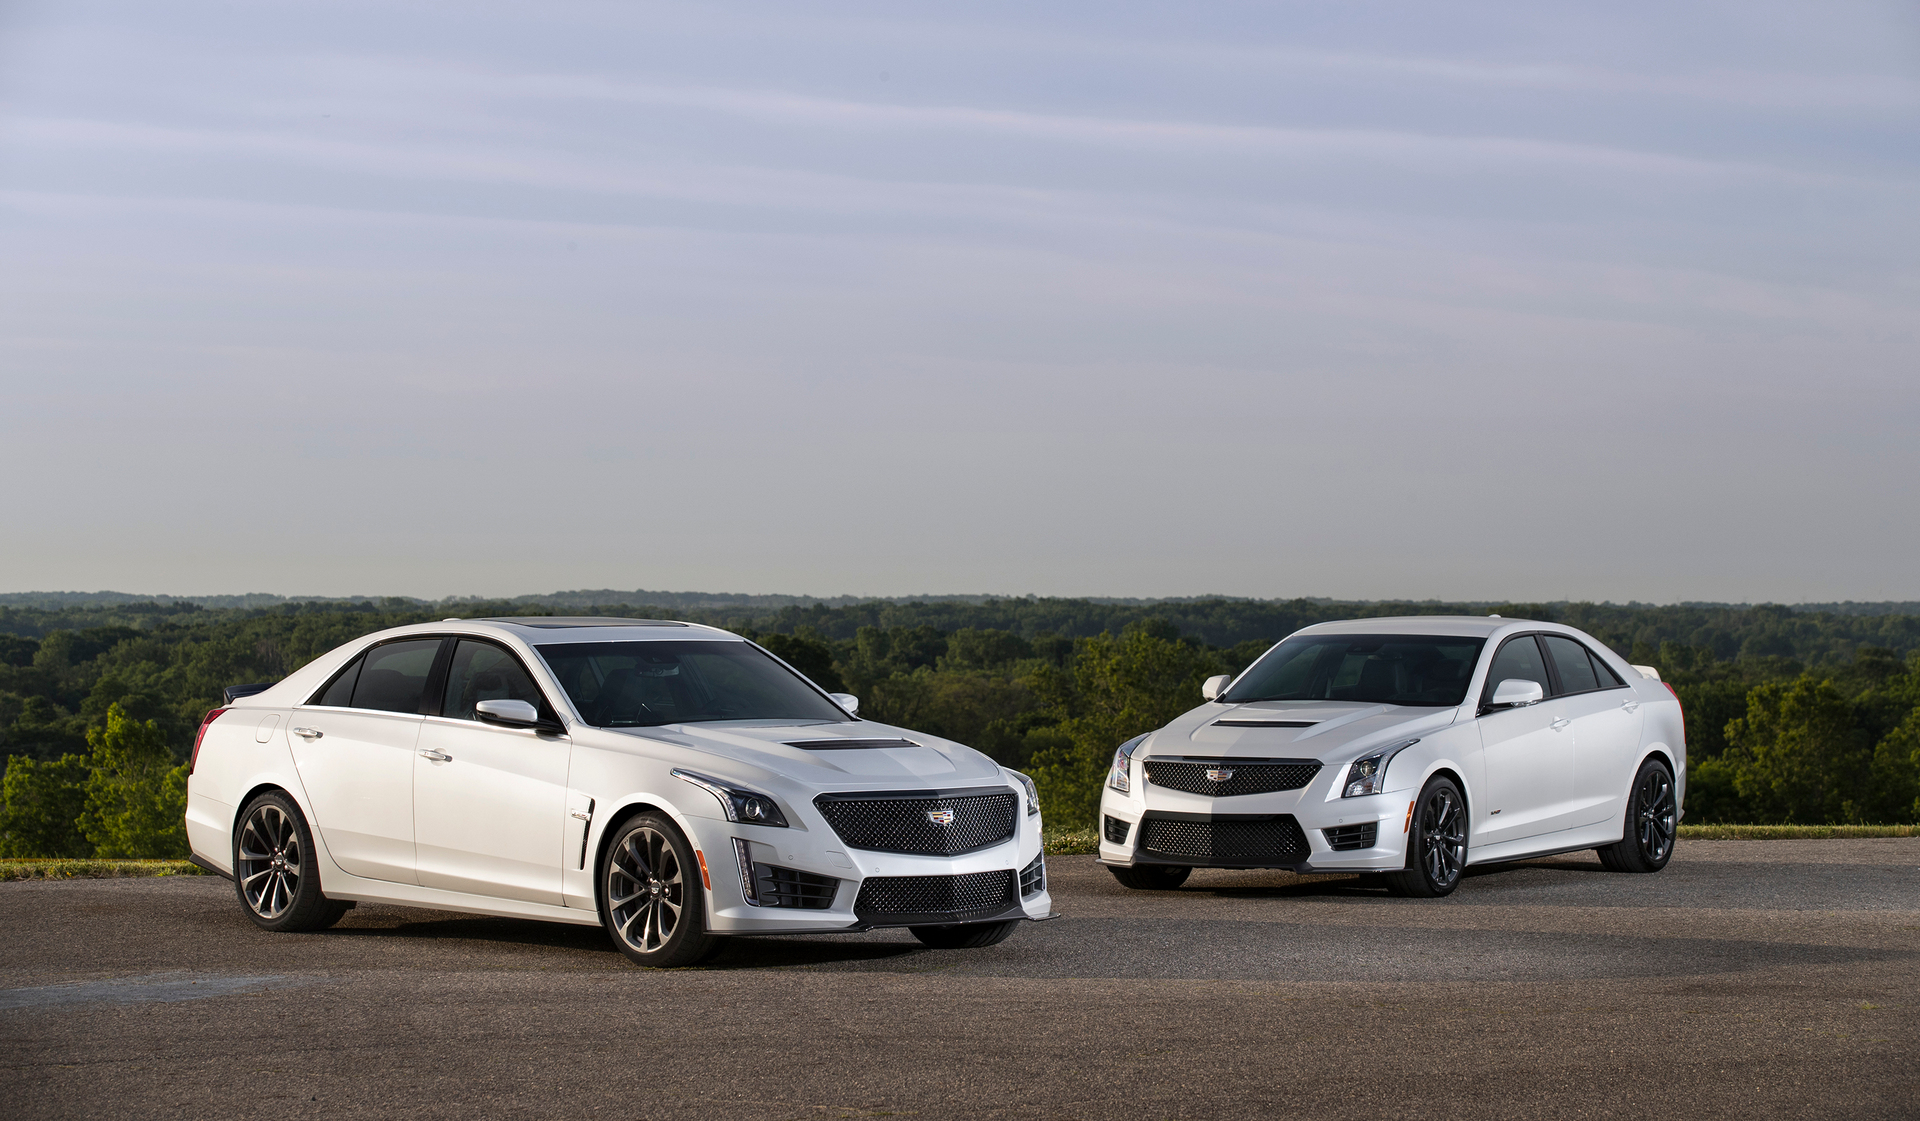 2017 Cadillac CTS-V super sedan and 2017 Cadillac ATS-V Sedan with the available Carbon Black sport package. The Carbon Black sport package – which includes the first-ever Black Chrome grille for V-Series models and the first-ever RECARO front seats for Cadillac ATS Sedan and Coupe models among additional exterior and interior appointments – further enhances the engaging performance and the striking design of Cadillac's driver's cars © General Motors